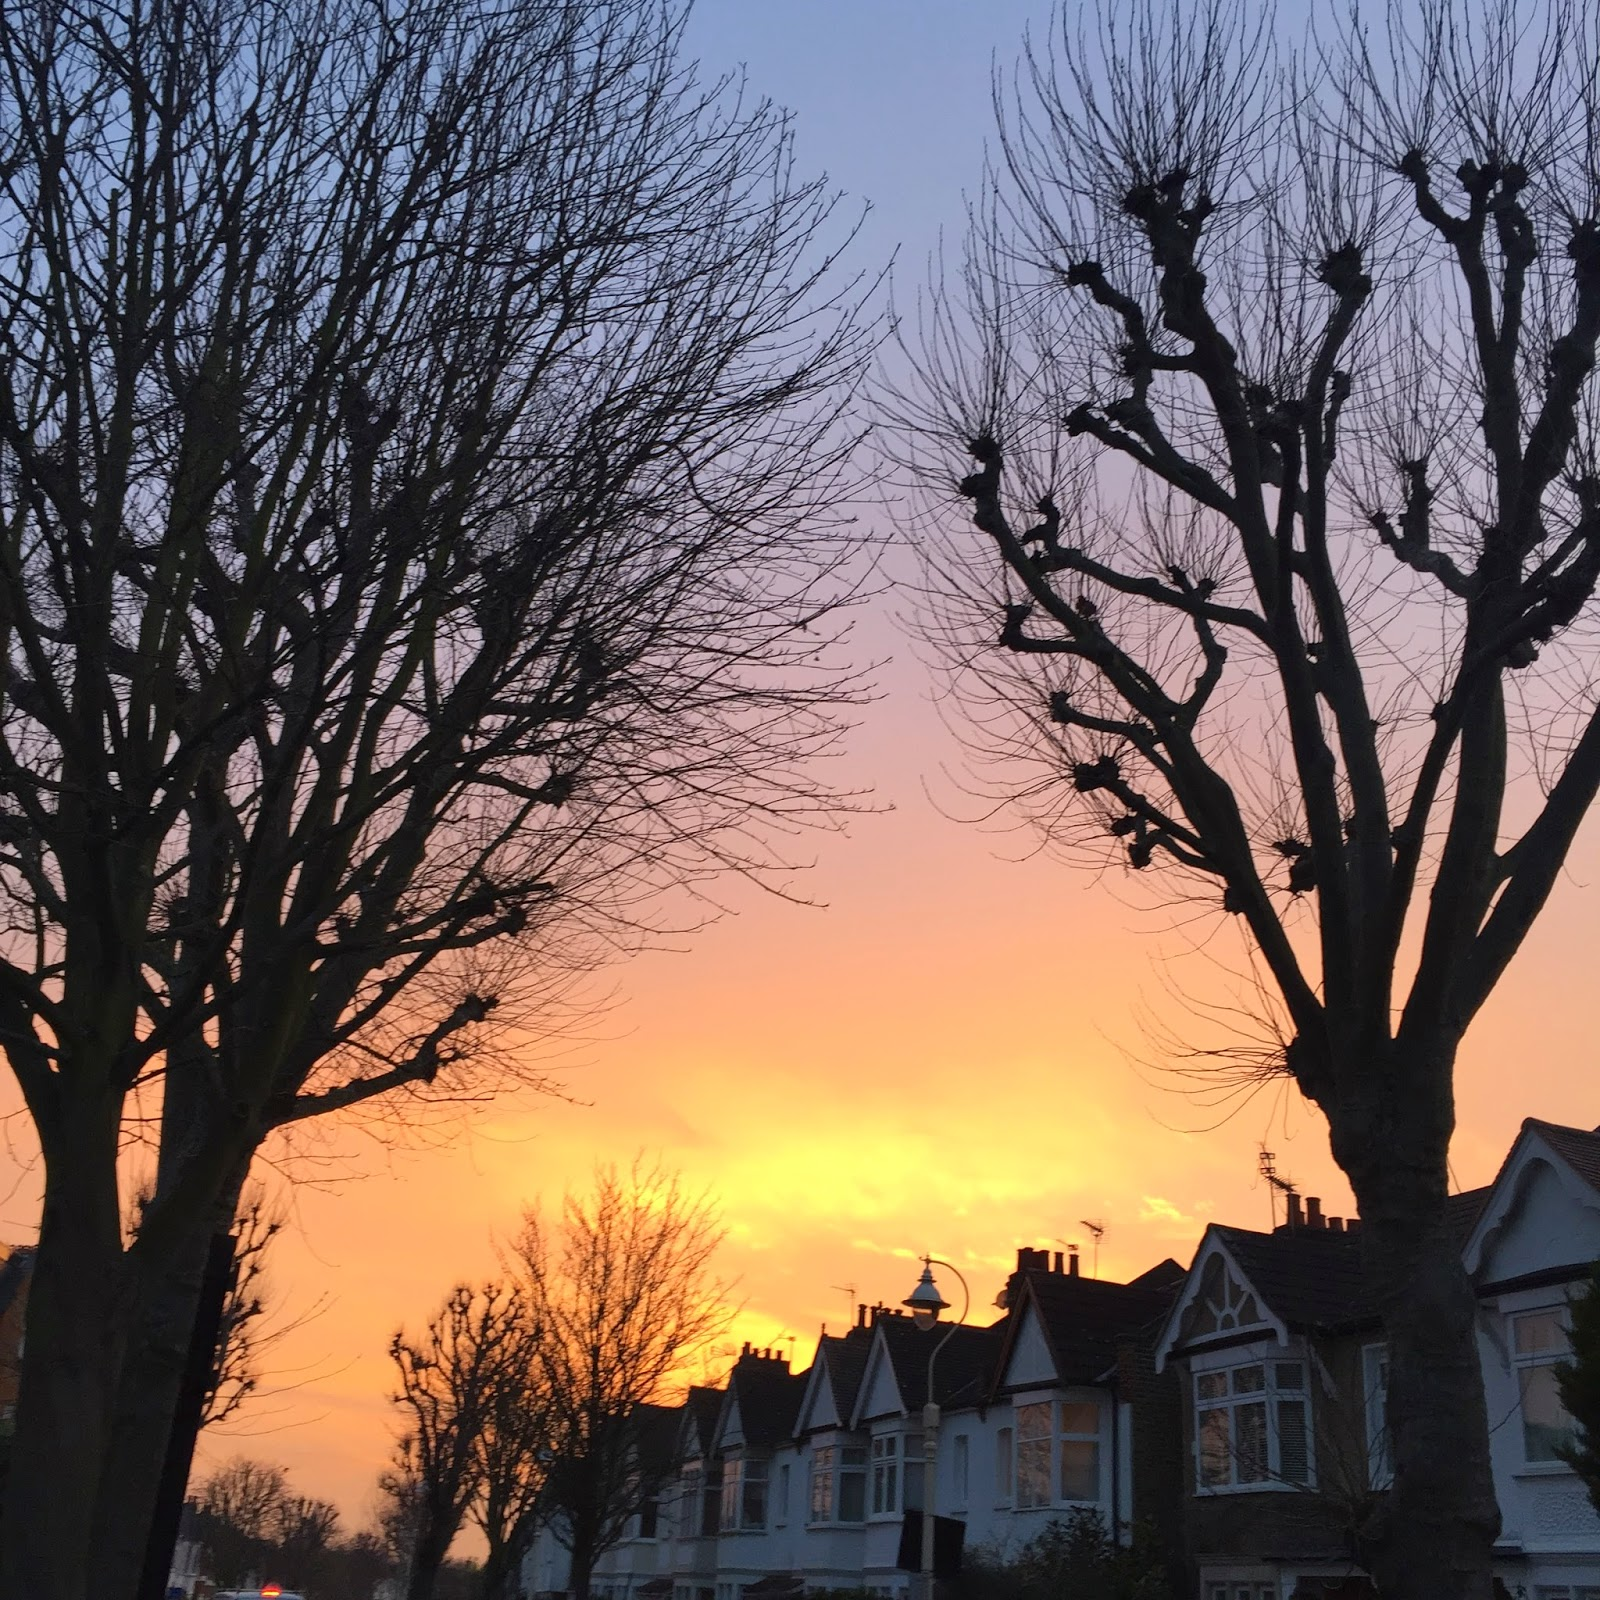 Sunset over Ealing